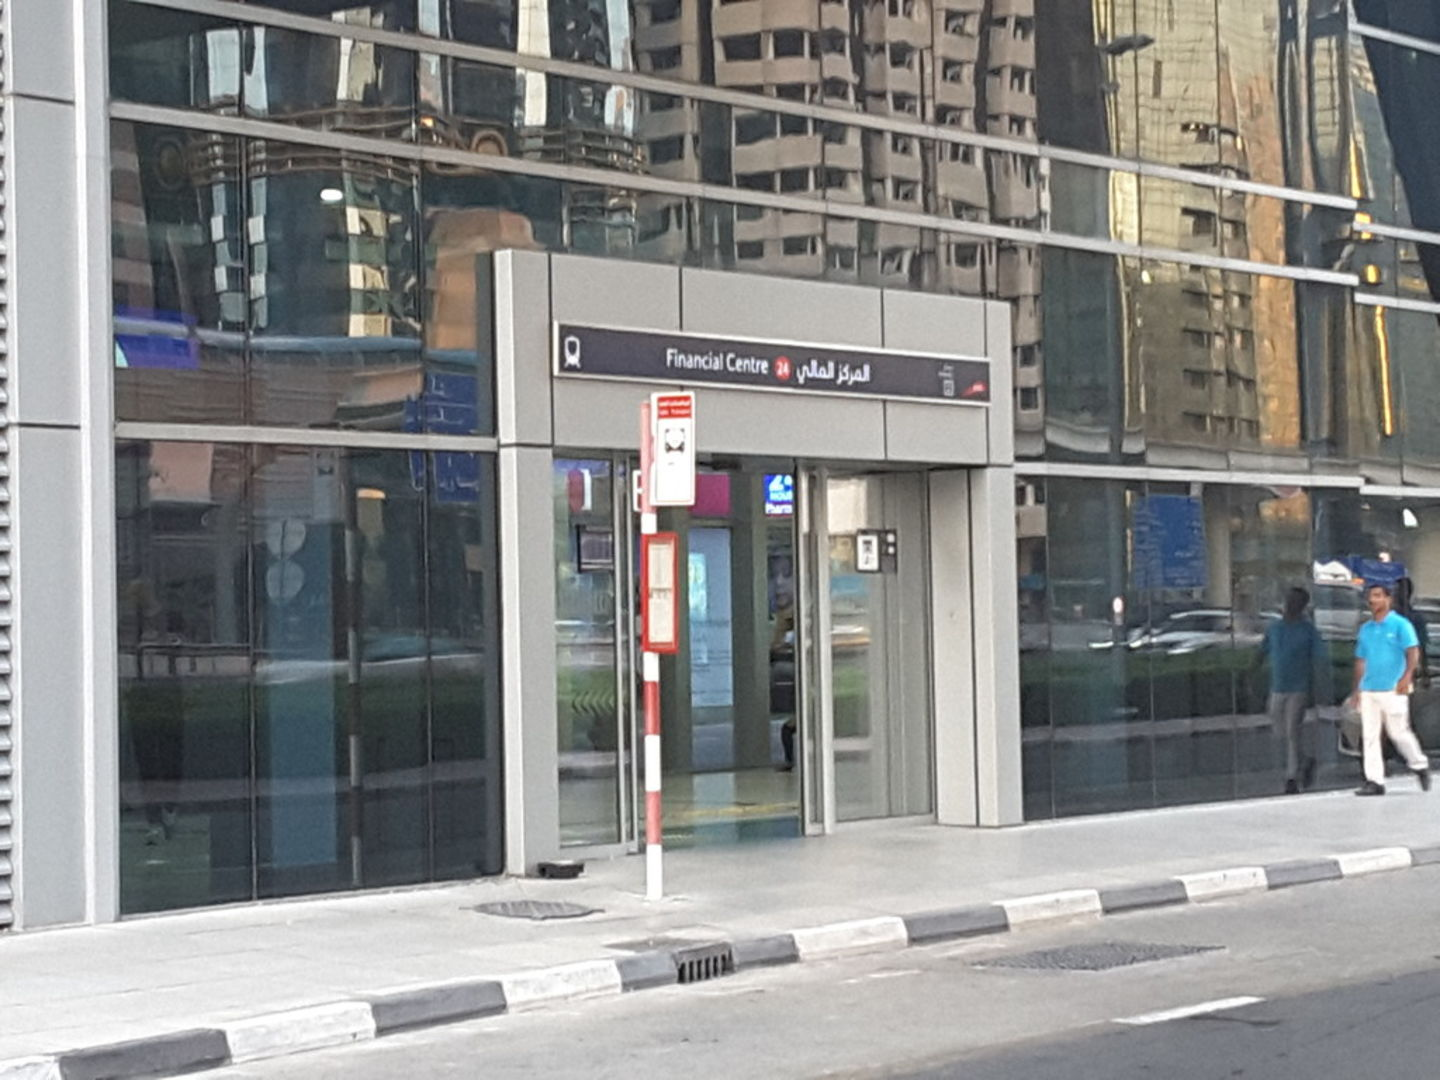 HiDubai-business-financial-center-metro-transport-vehicle-services-public-transport-sheikh-zayed-road-1-trade-centre-2-dubai-2